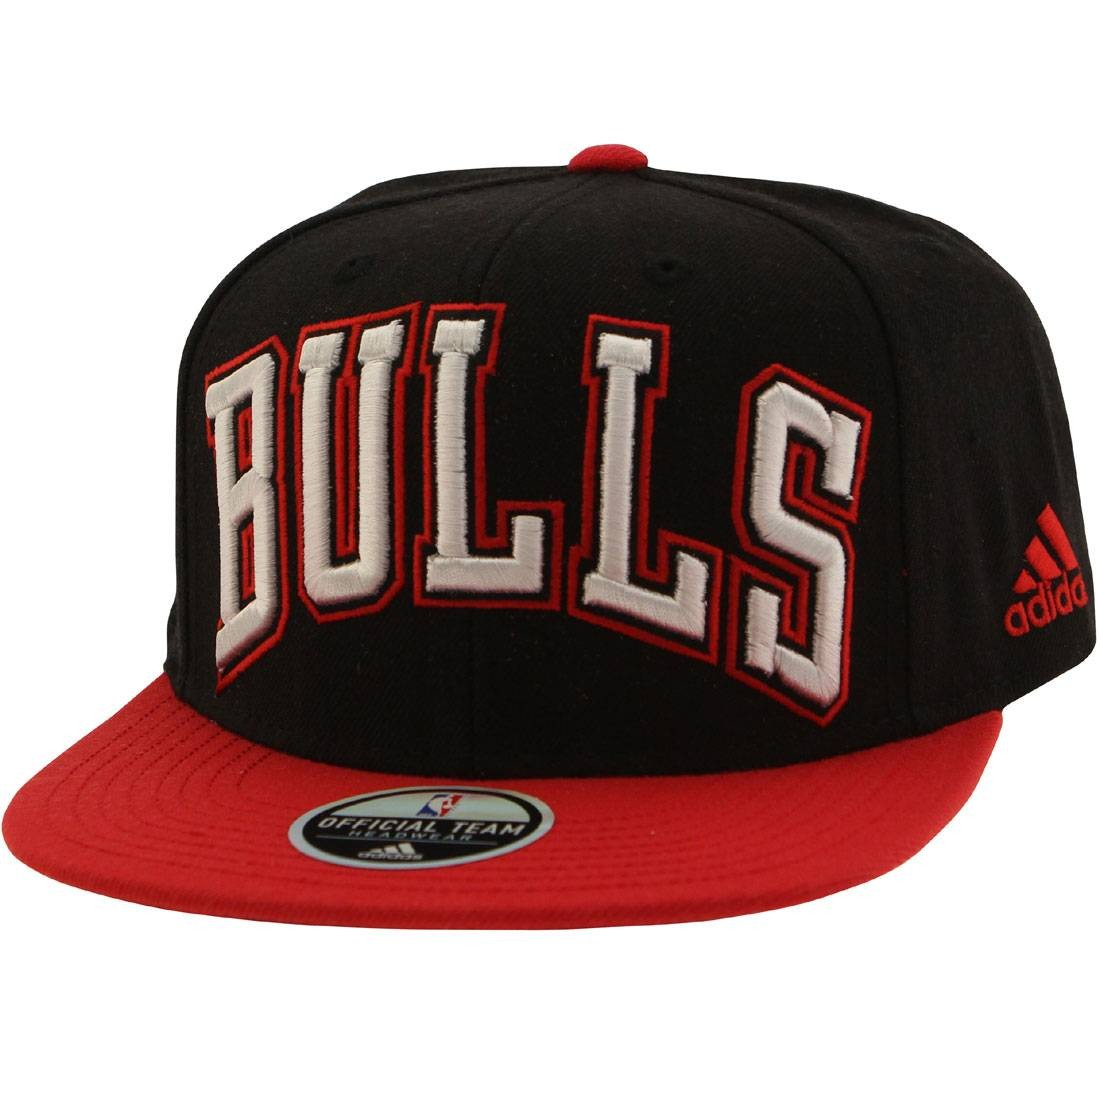 Adidas NBA Chicago Bulls On Court Snapback Cap black red c83641475cc